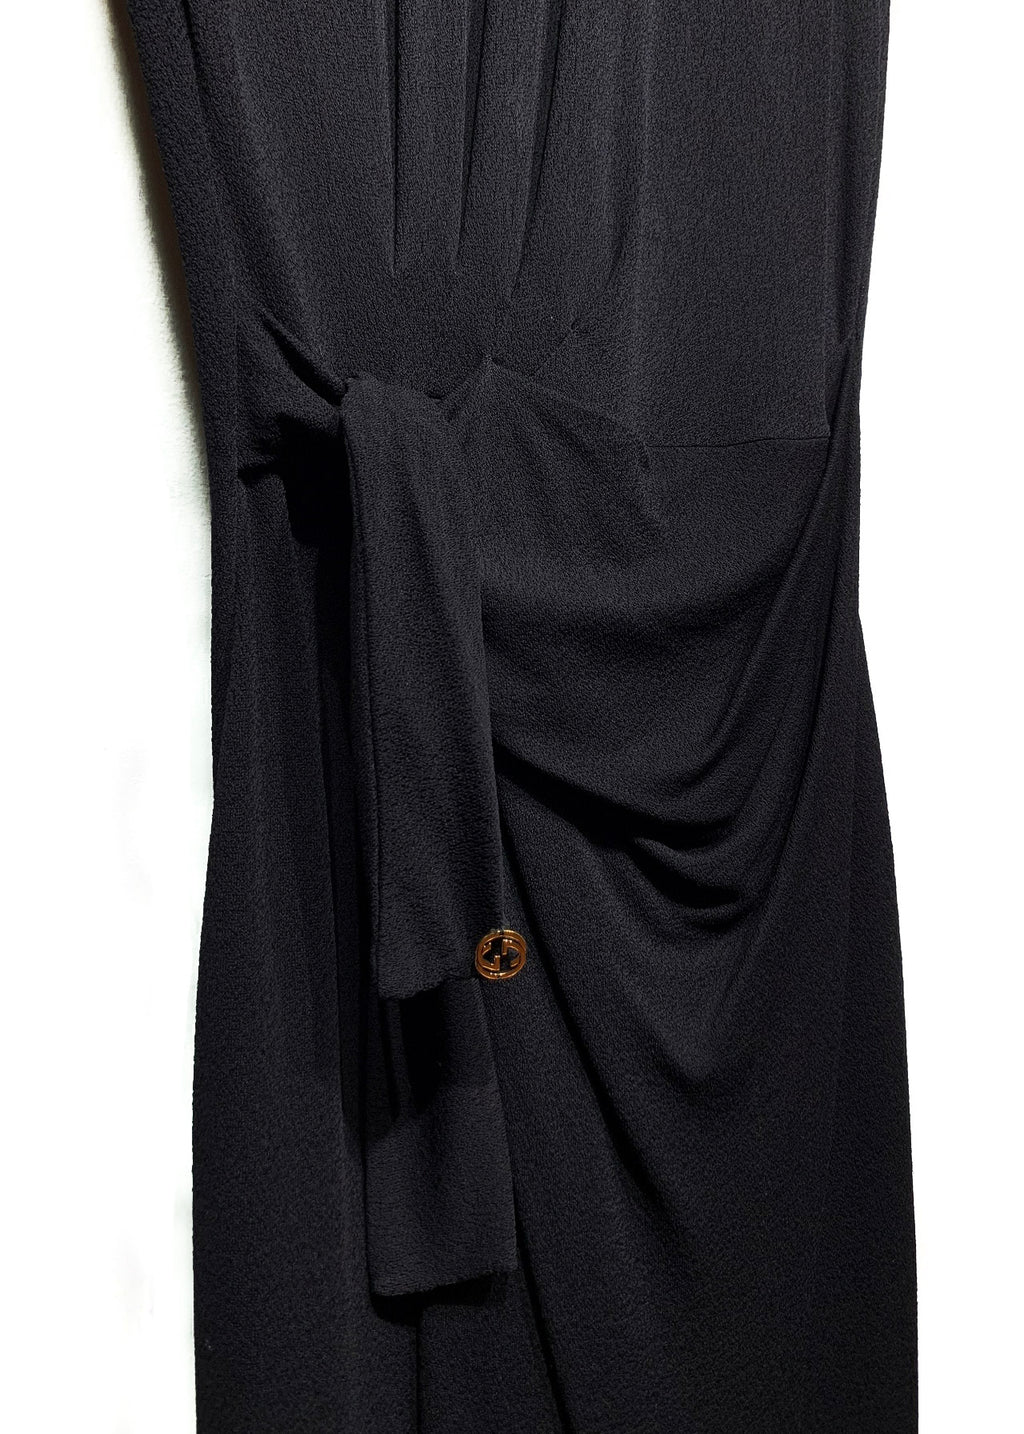 Gucci Black Crepe Tie Short Sleeves Dress